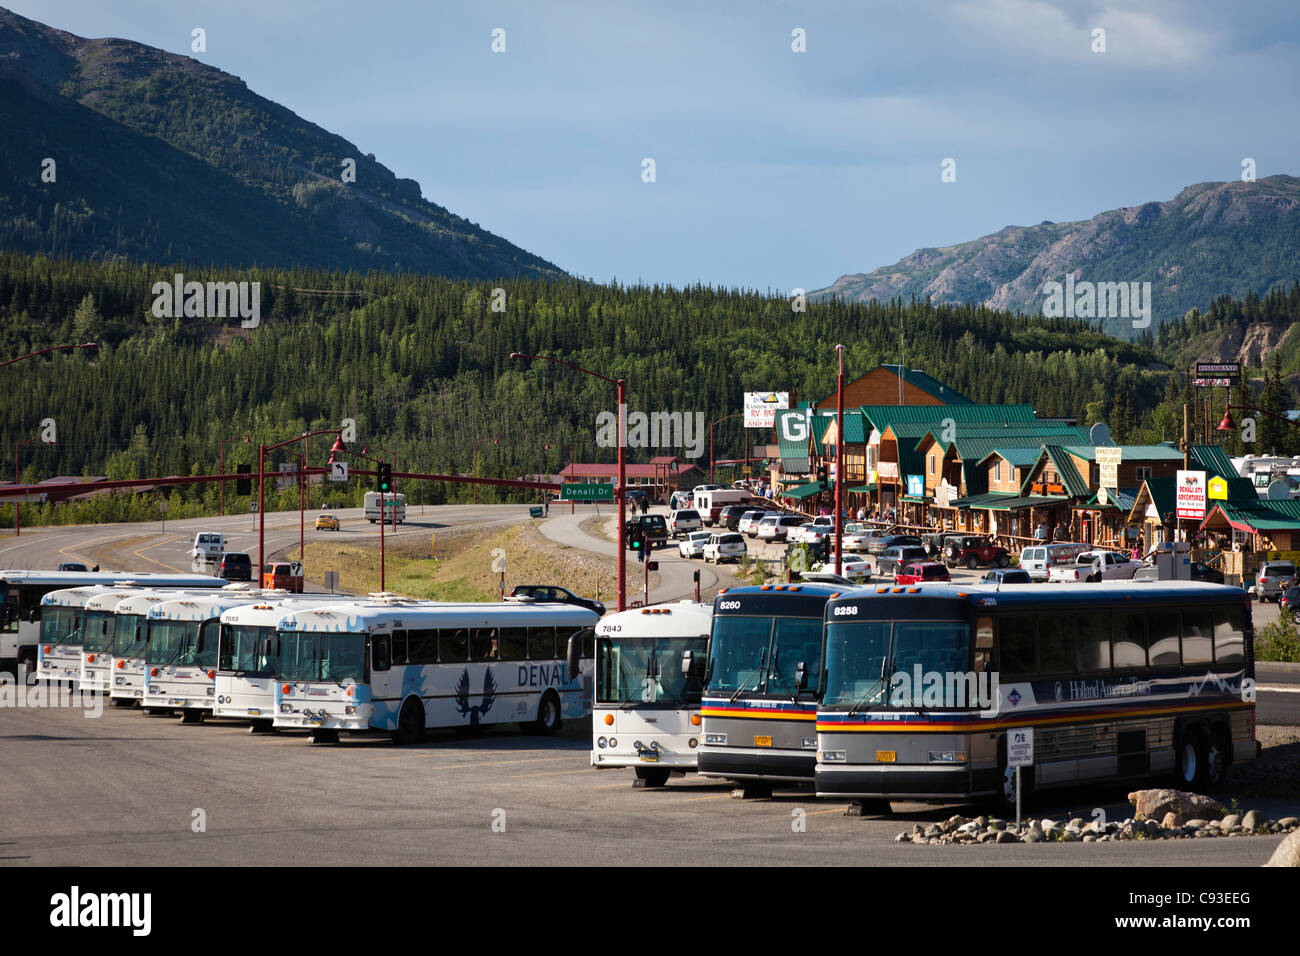 View of tour buses and tourist shop in Denali, Alaska - Stock Image